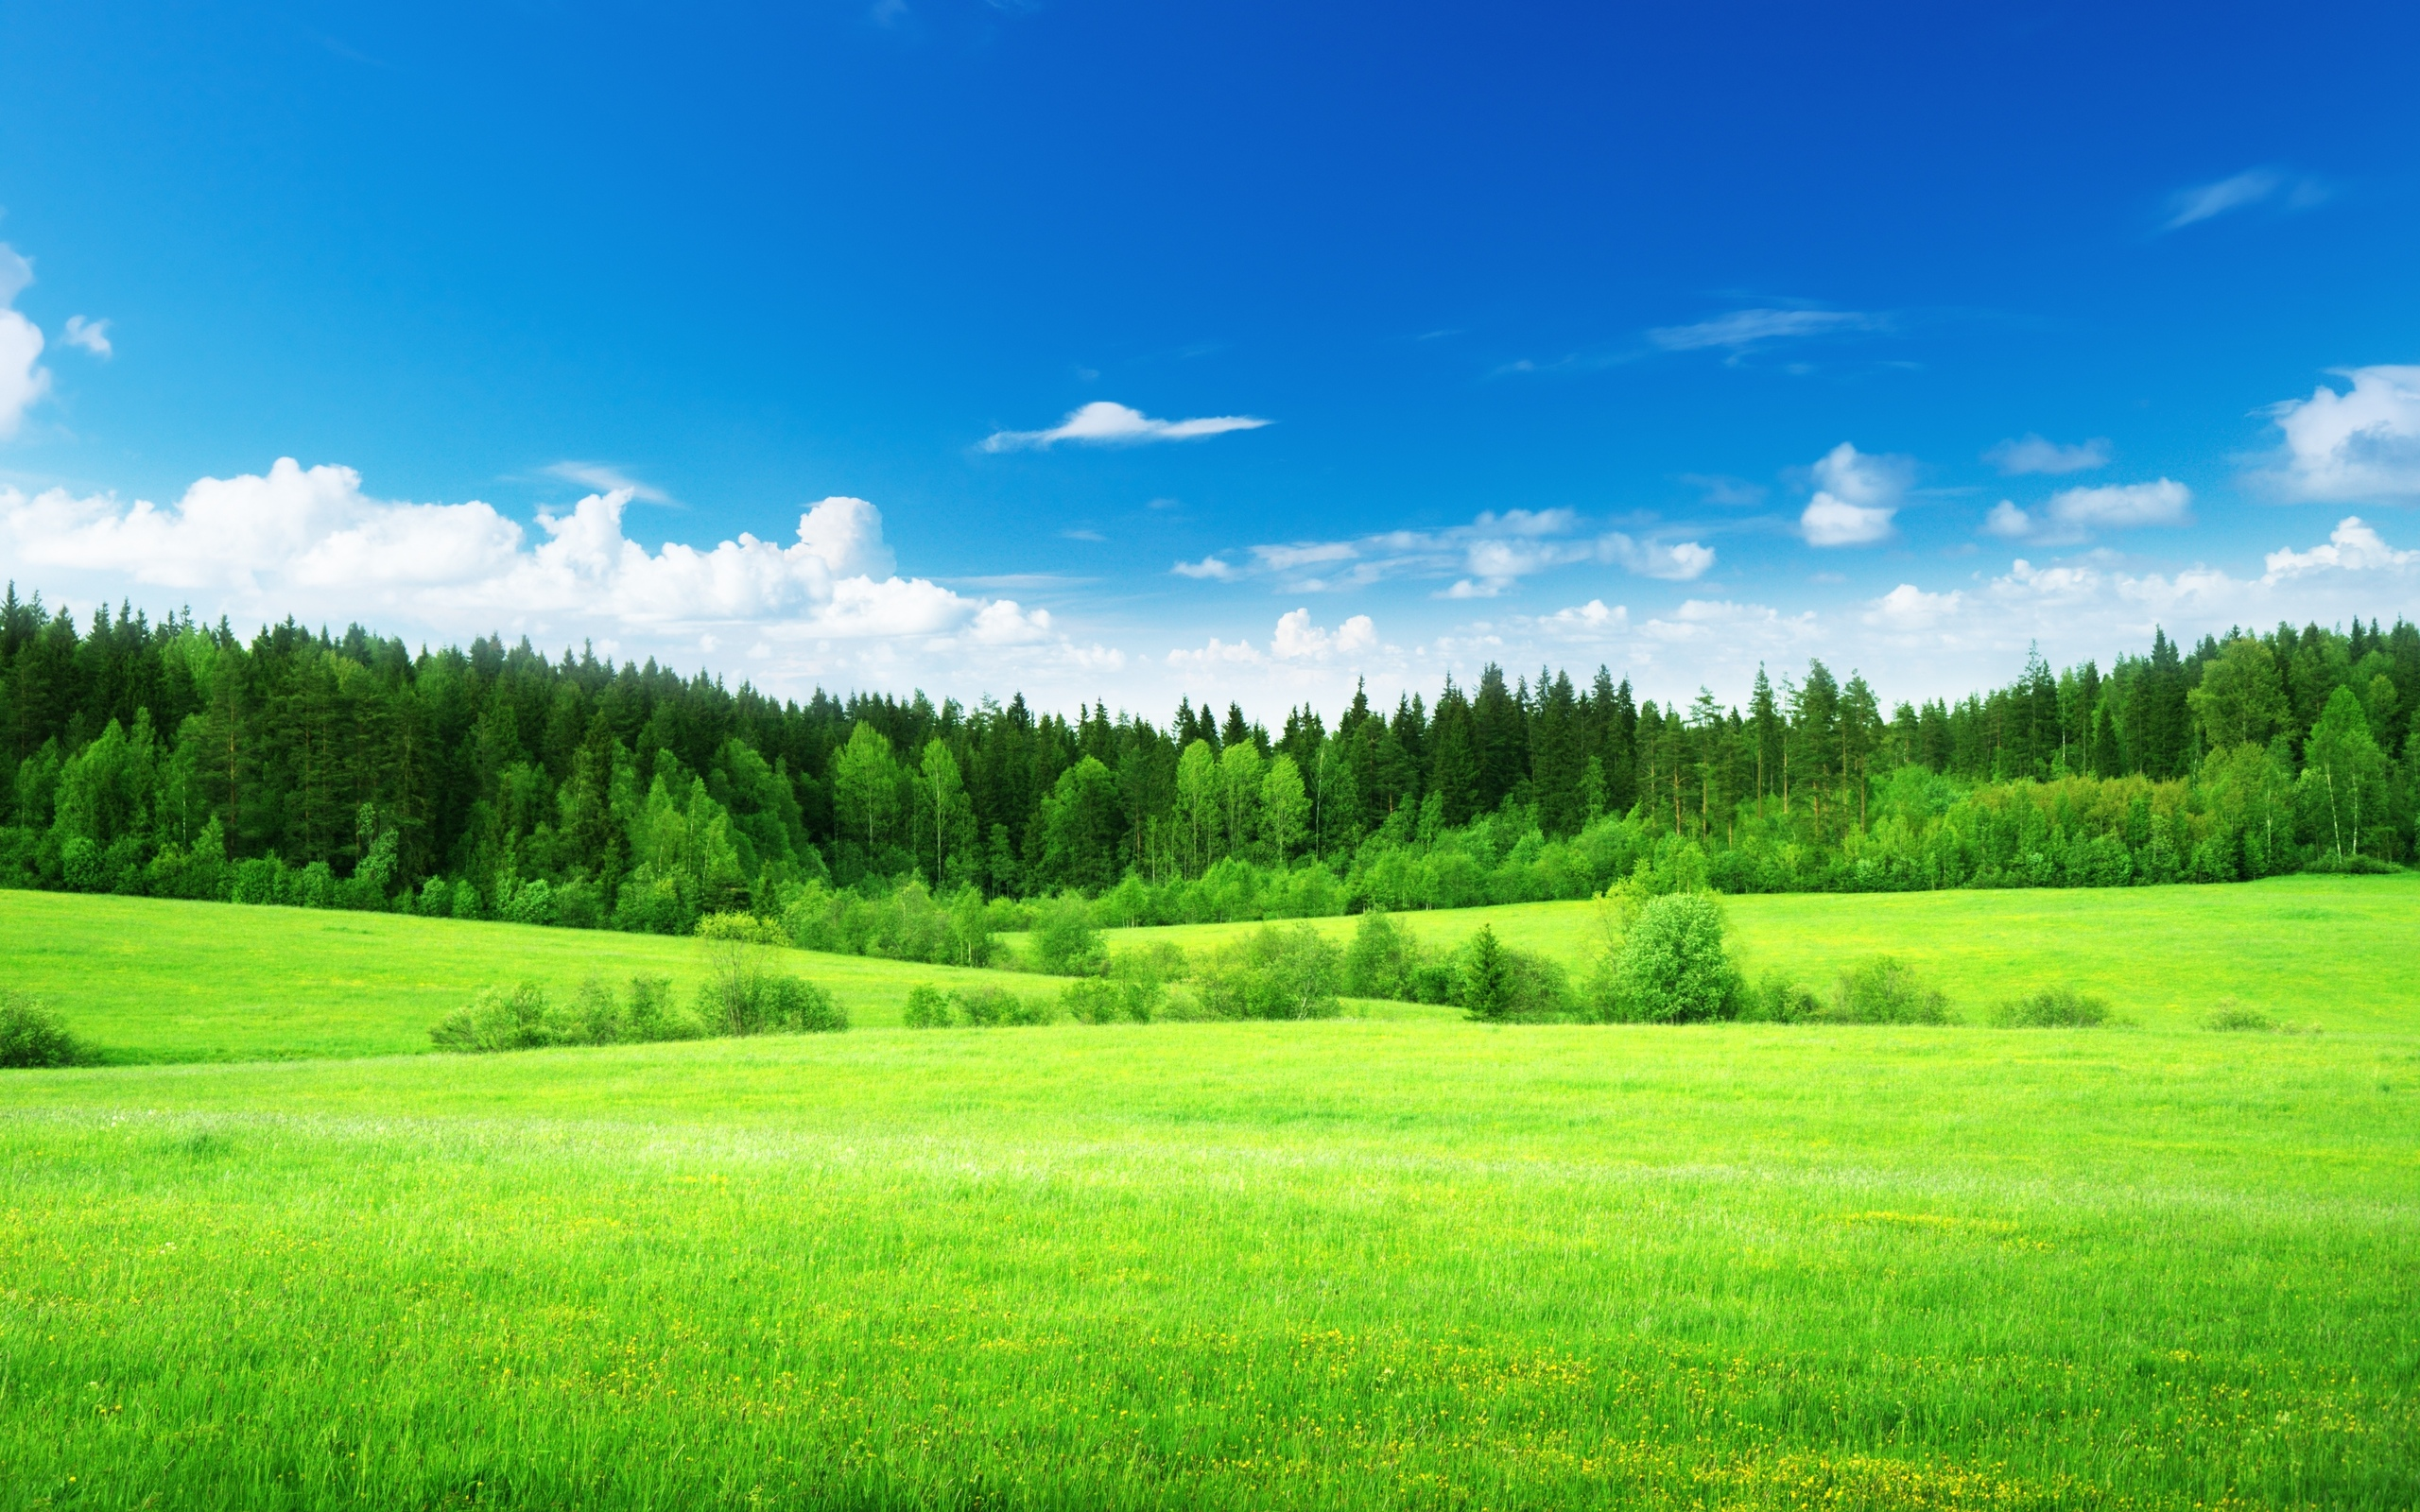 General 2560x1600 green grass trees sky clouds